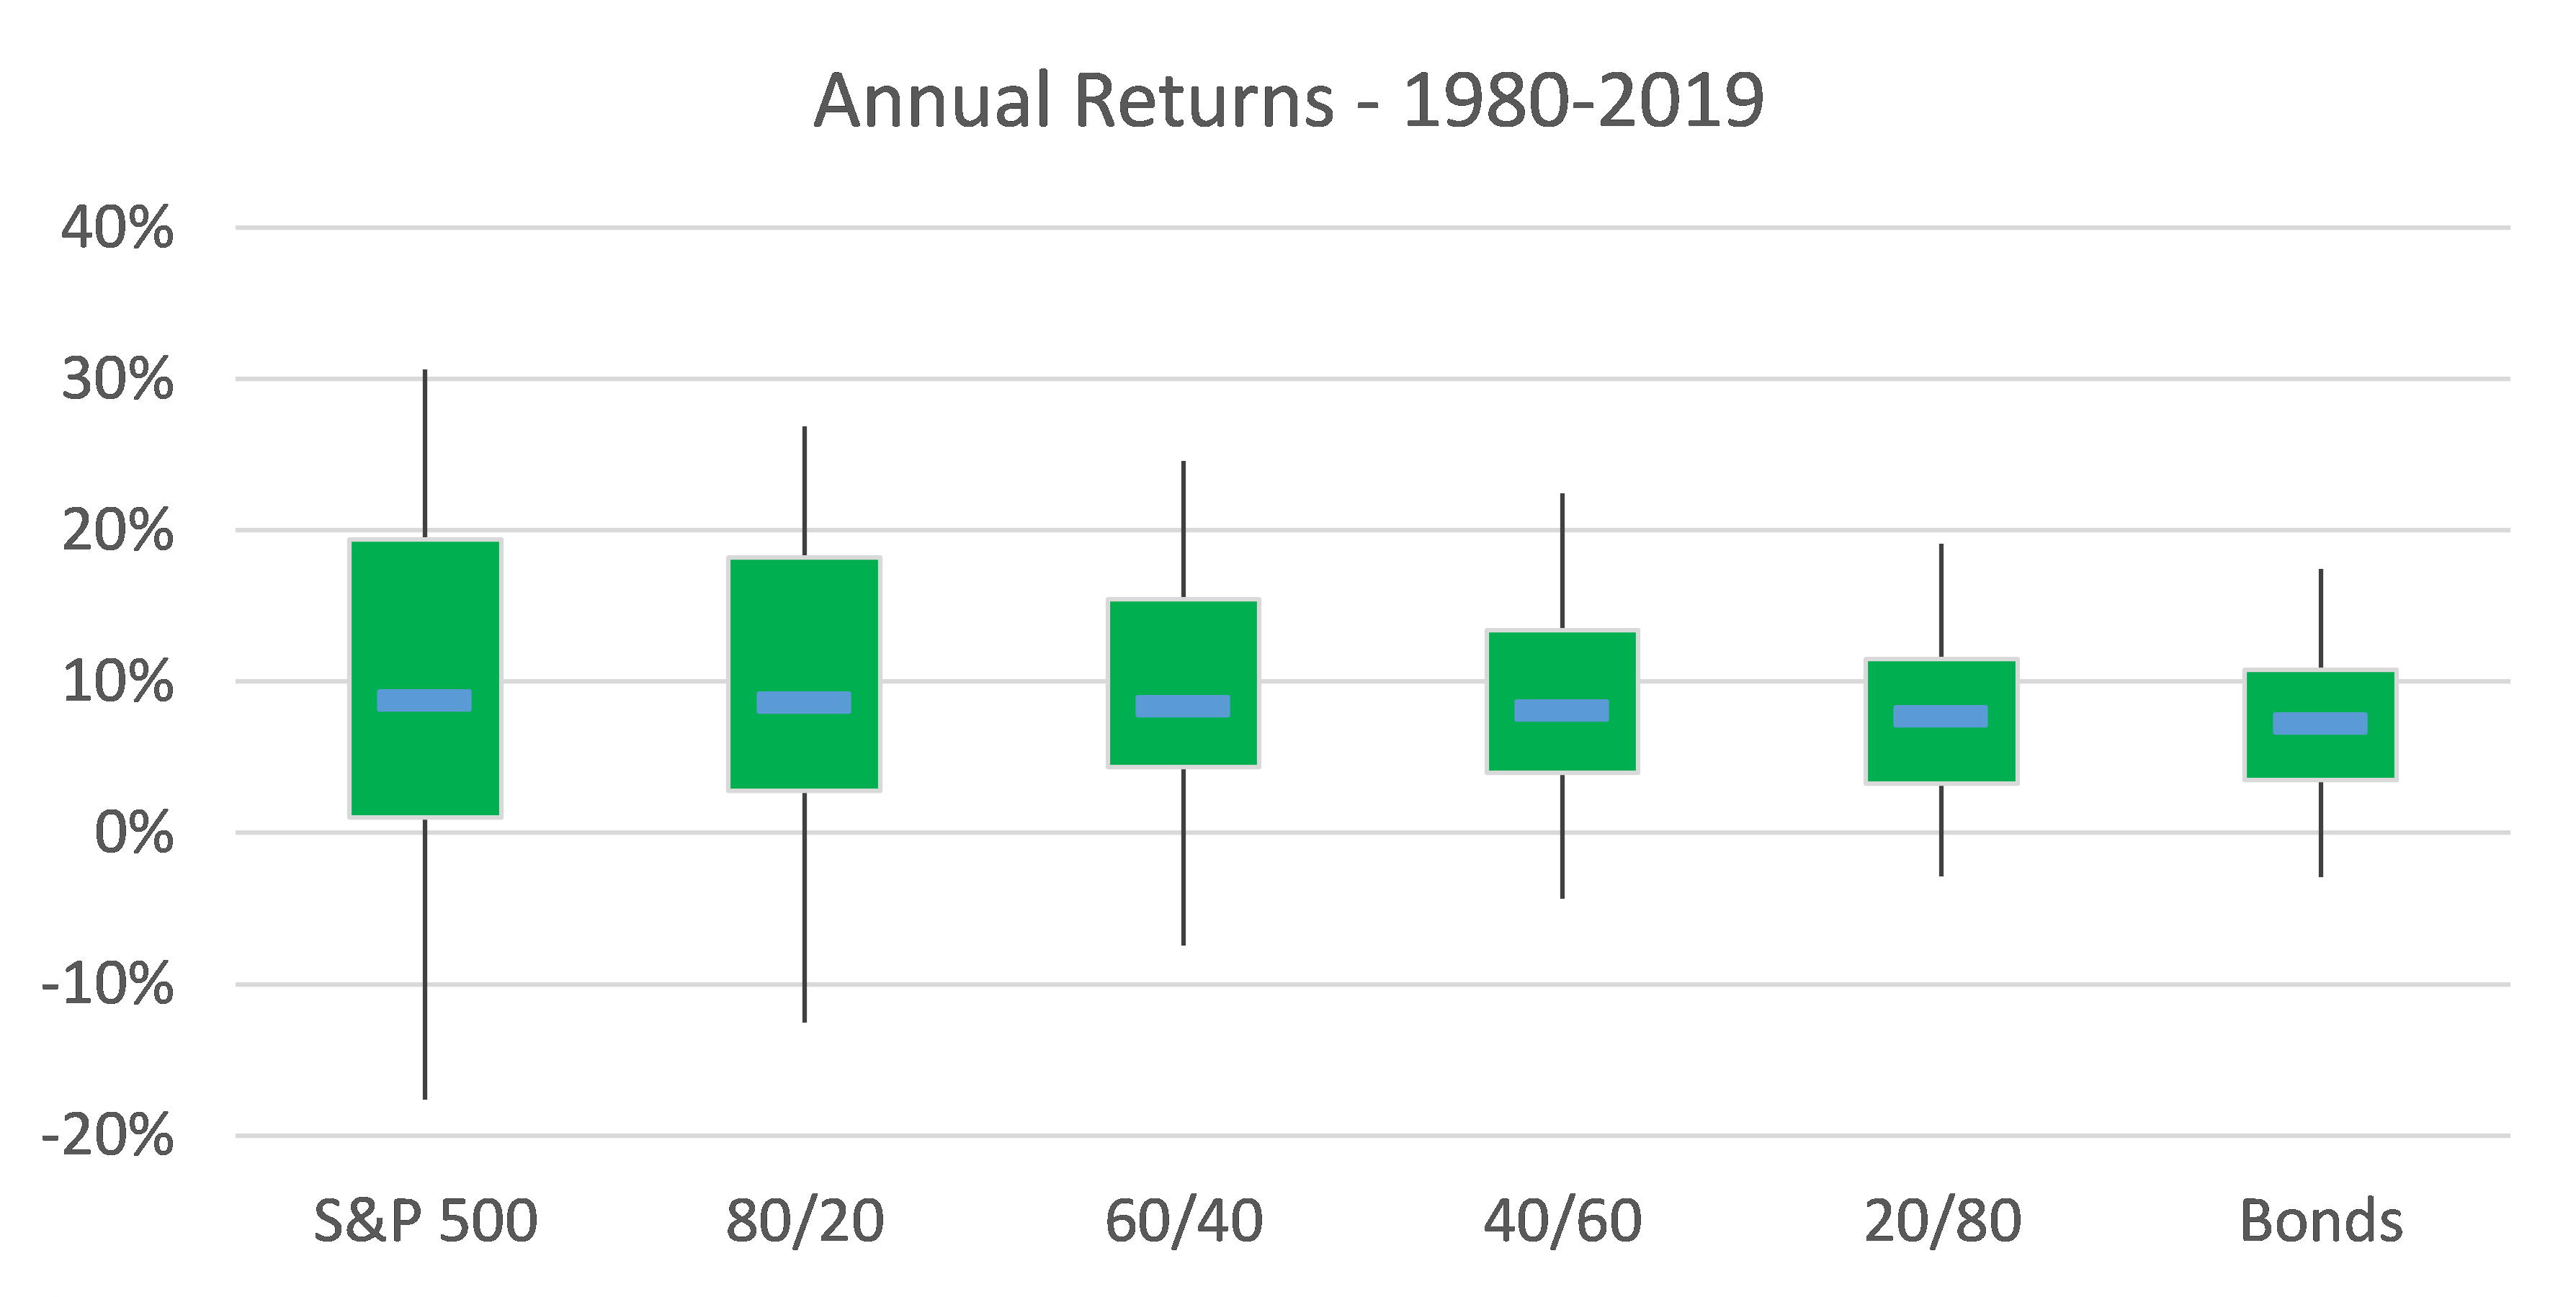 Annual Returns for Different Asset Allocations 1980-2019